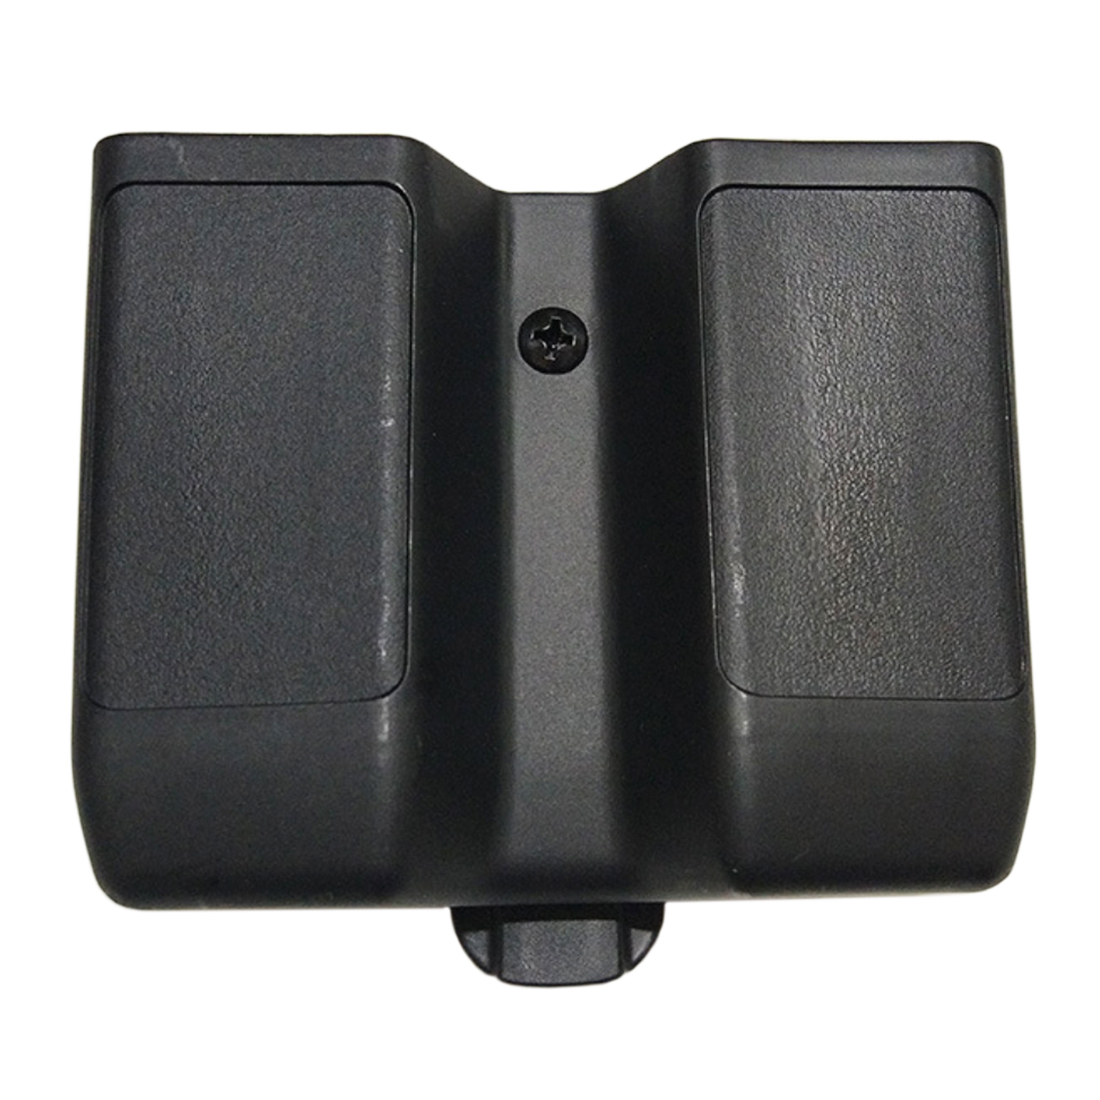 Double Rows Fast Magazine Waist Tactical Fast Magazine Double Magazine Case Holder for Glock <font><b>M1911</b></font> - Black image